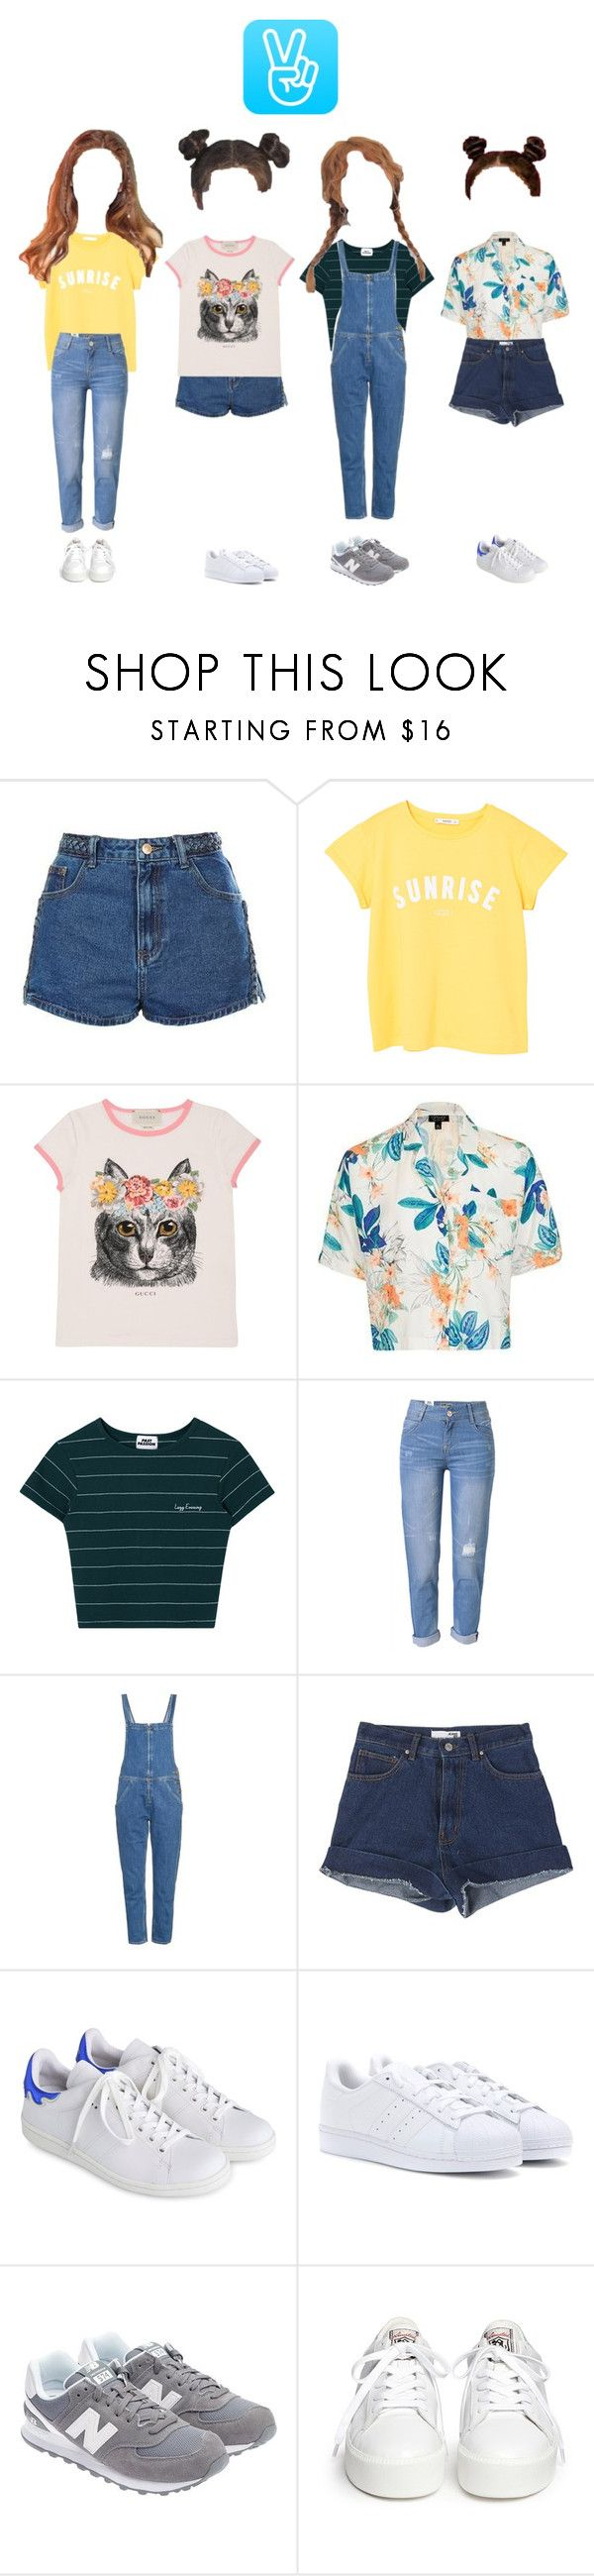 """""""(CDLC) Live on VAPP"""" by cdlc-official ❤ liked on Polyvore featuring Topshop, MANGO, Gucci, WithChic, M.i.h Jeans, StyleNanda, Isabel Marant, adidas Originals, New Balance and Ash"""